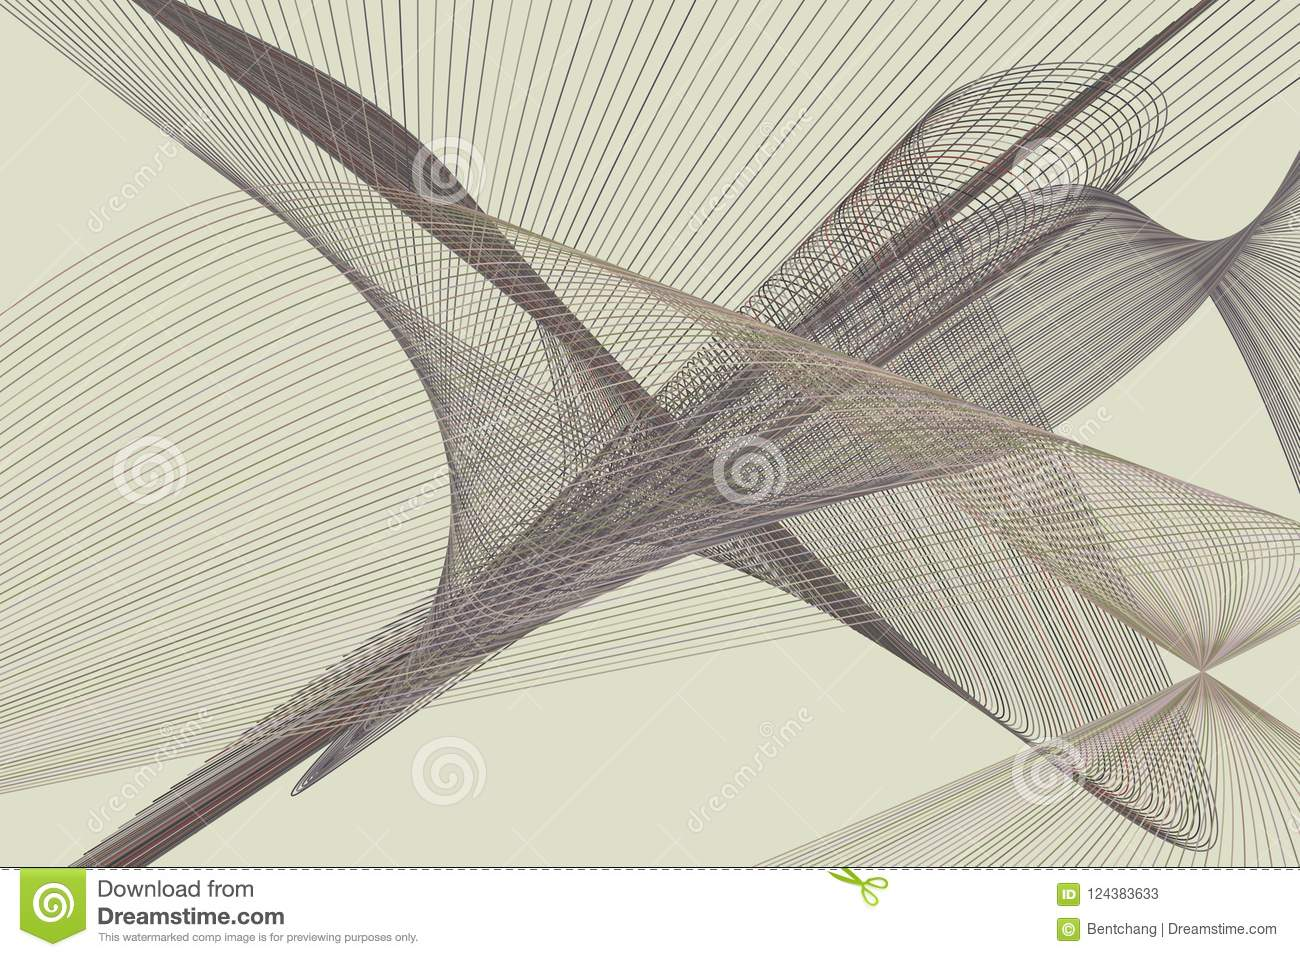 Abstract line & curve geometric pattern, colorful & artistic for graphic design. Vector, wallpaper, concept & illustration.